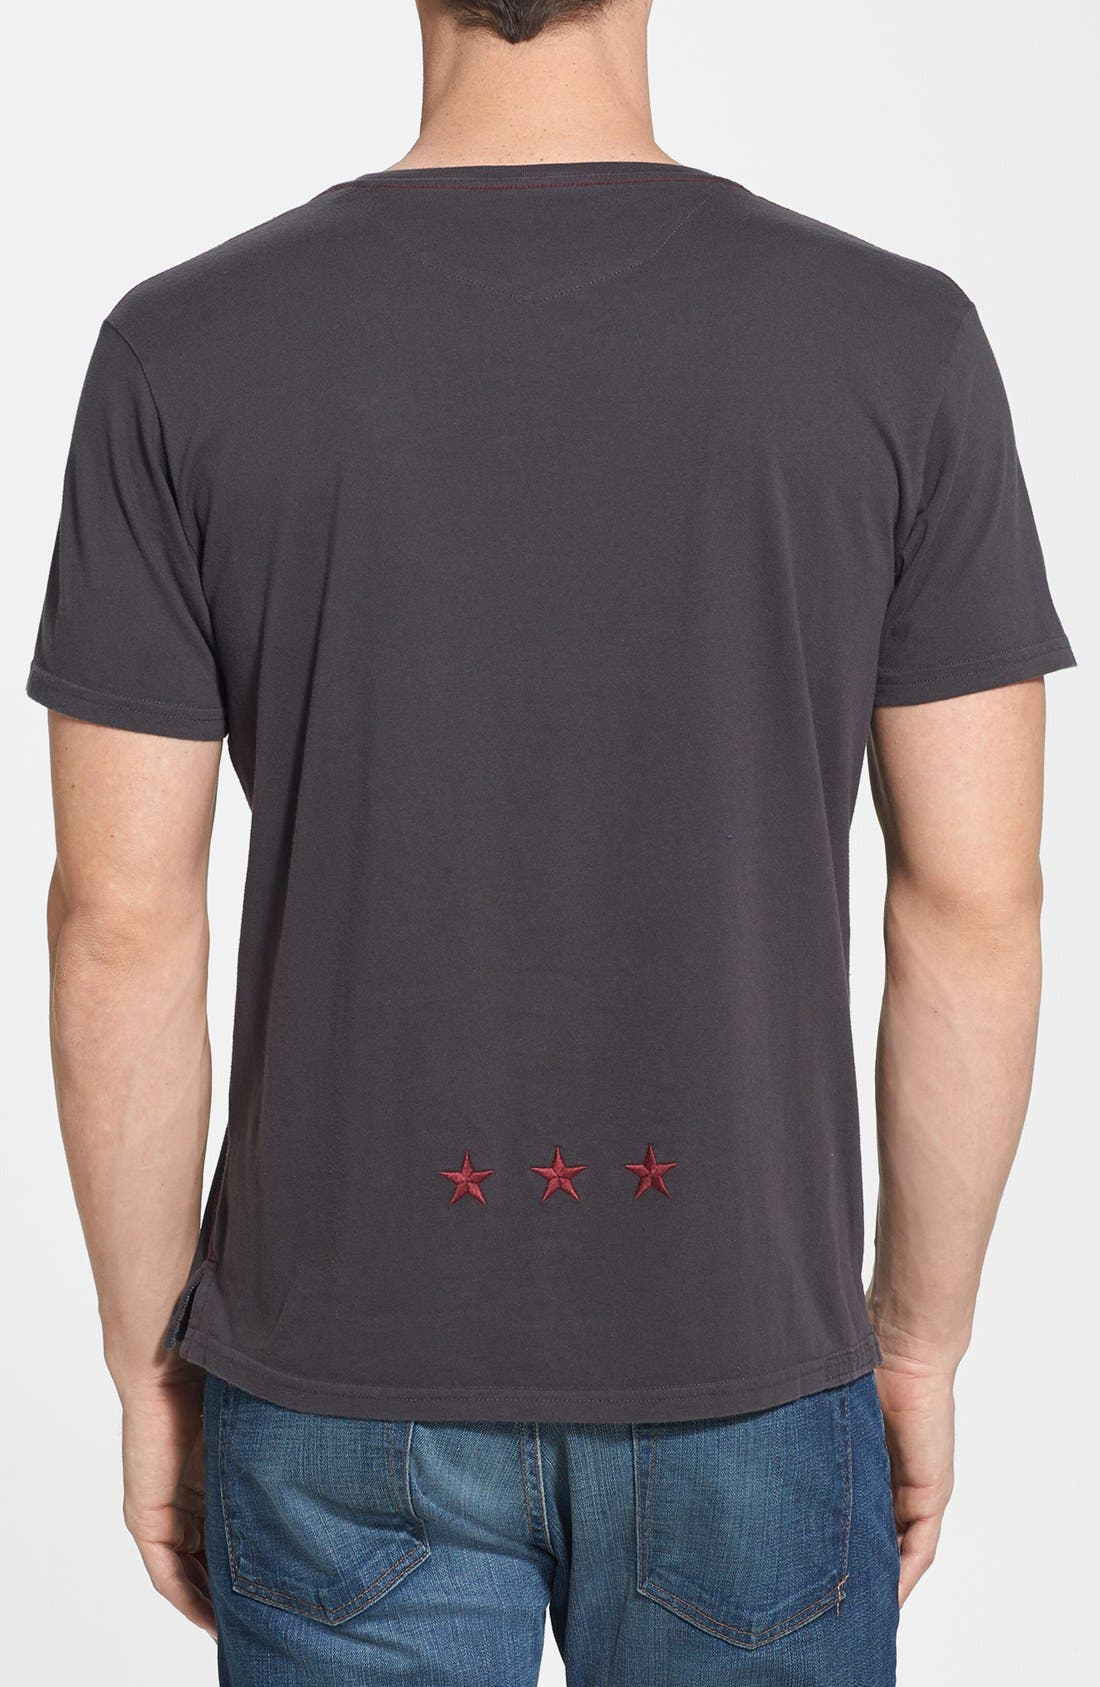 Alternate Image 2  - Robert Graham 'For Those Who Pave' Tailored Fit T-Shirt